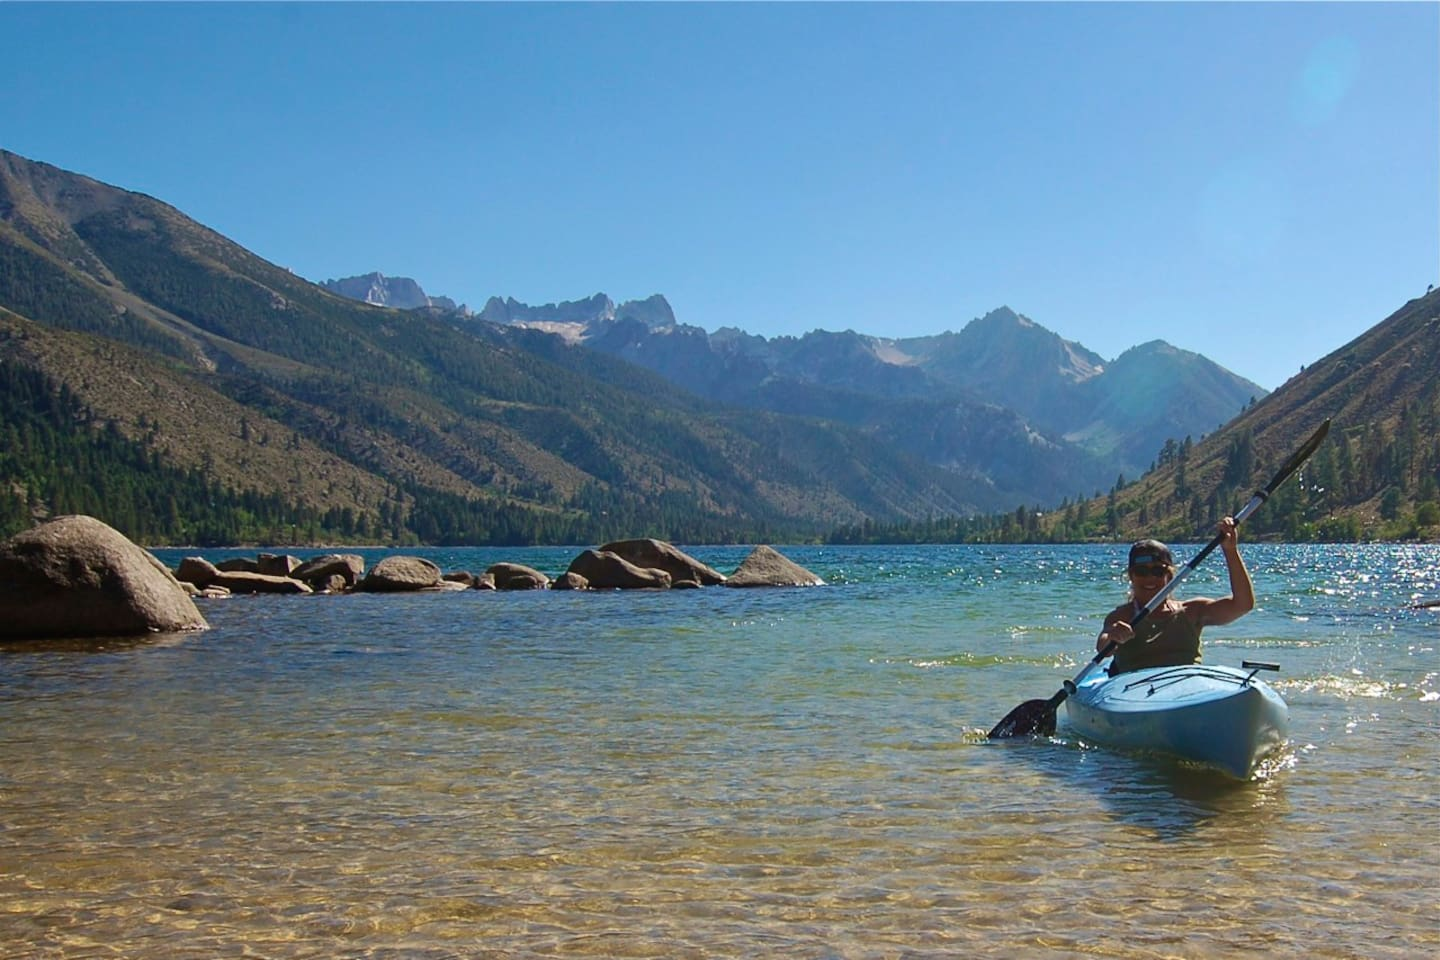 Twin Lakes, CA - a 15 minute drive from here